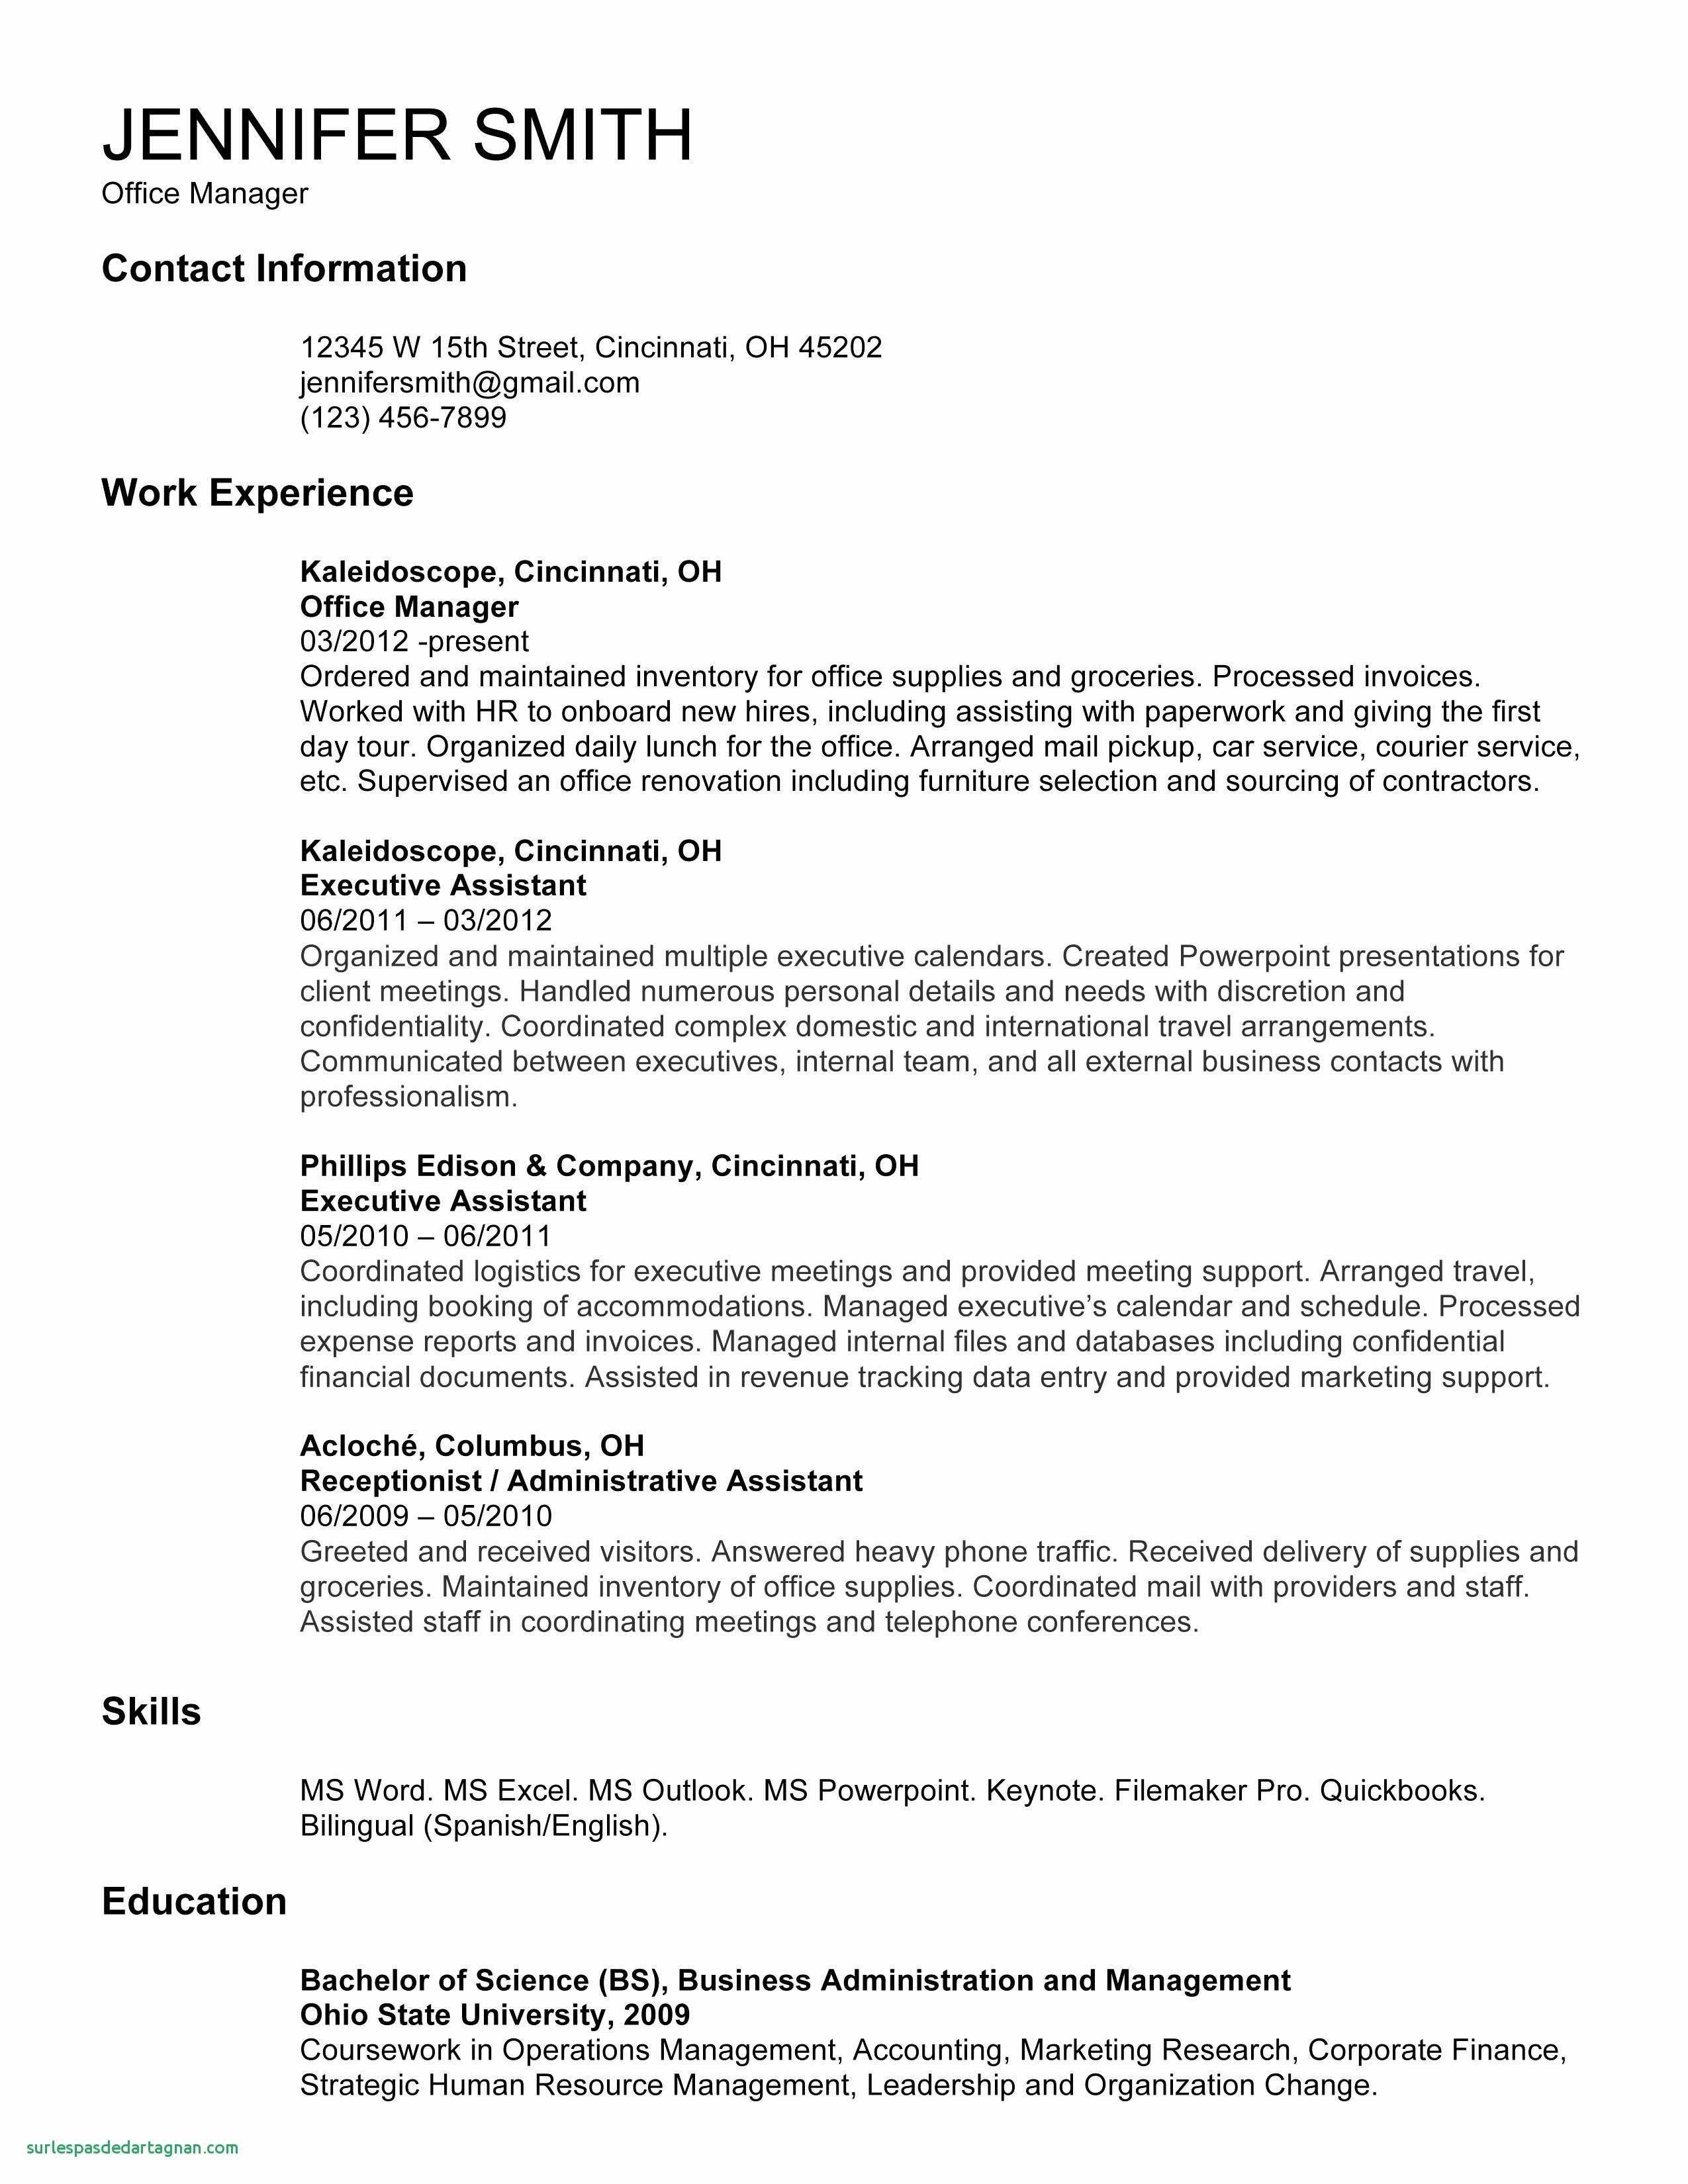 Accounting Resume Template Word - Resume Template Download Free Unique ¢Ë†Å¡ Resume Template Download